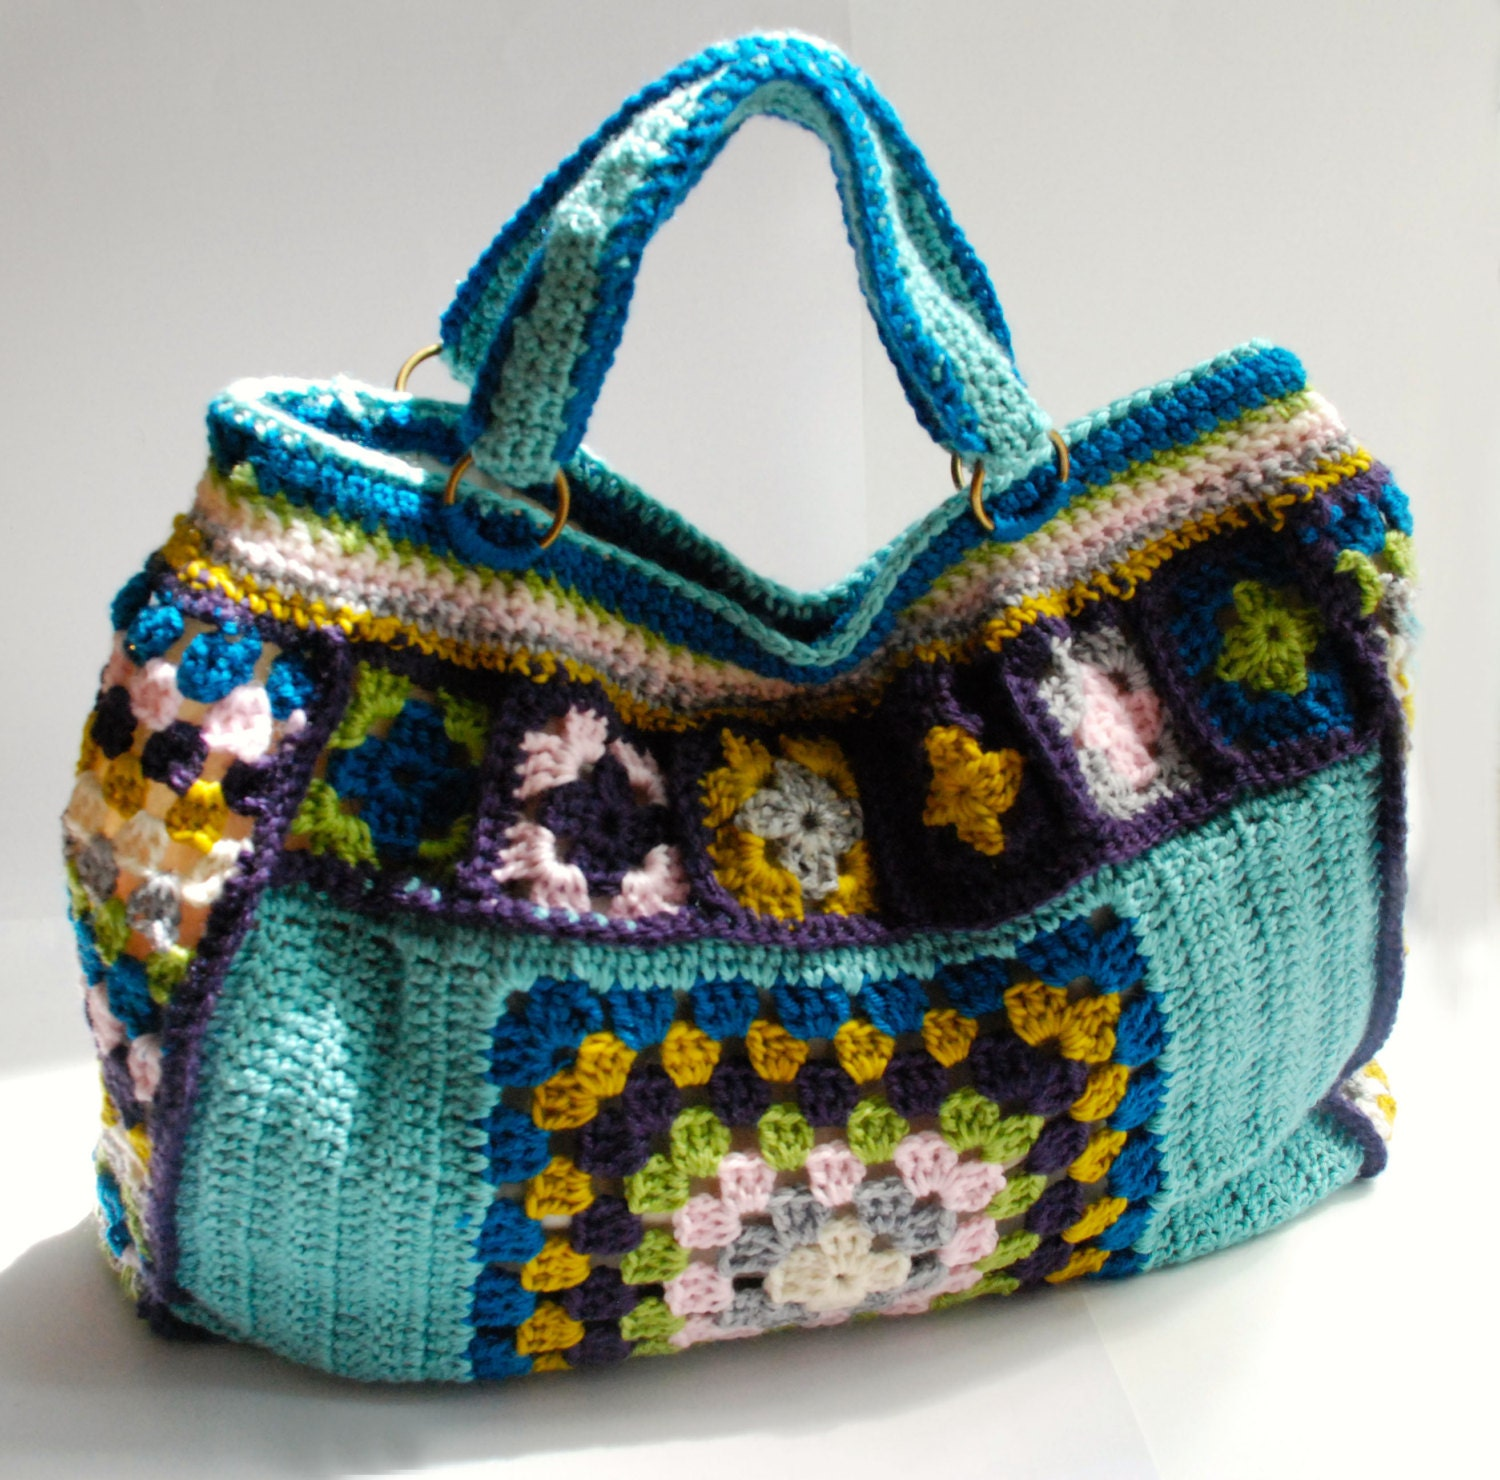 Crochet Granny Square Tote Bag Pattern : Crochet purse granny square weekend bag pattern by KristisTwist